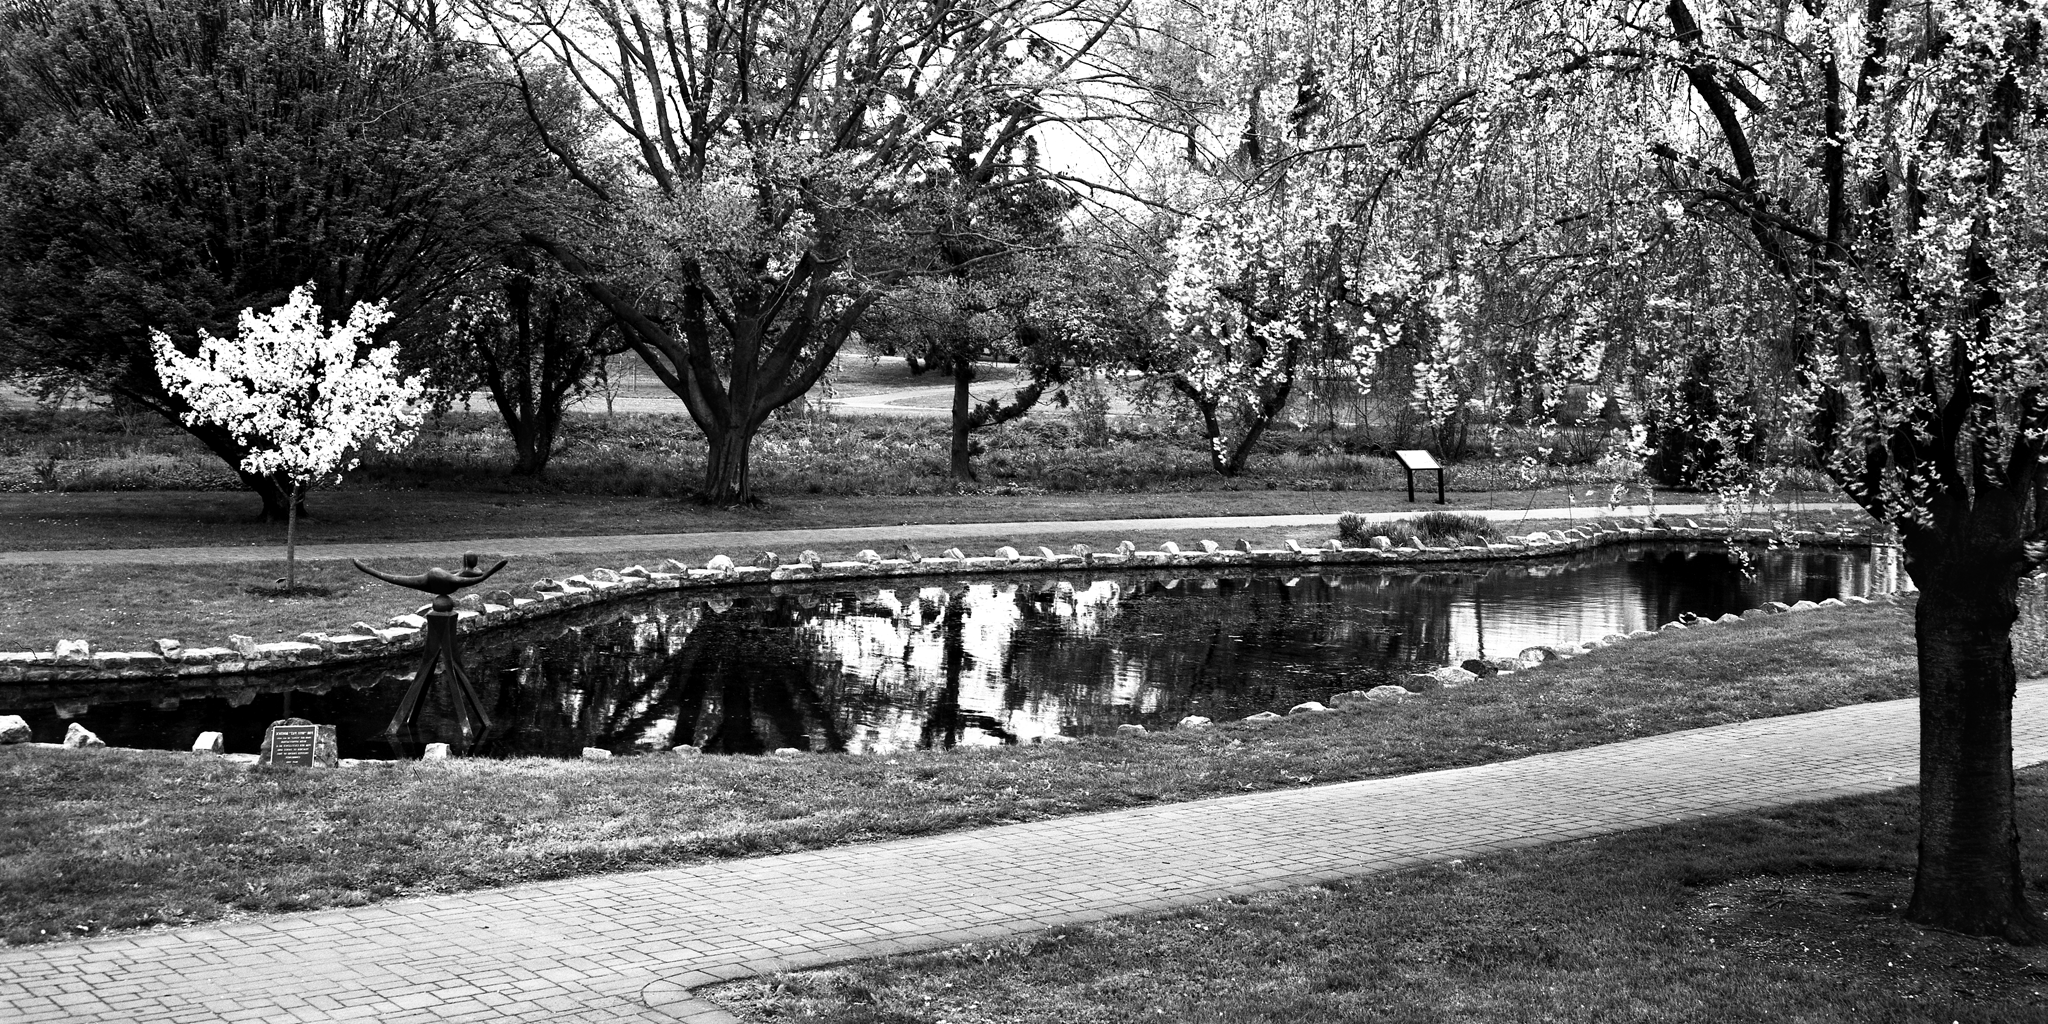 4x5_for_365_project_0130_Allentown_Rose_Garden_pond.png